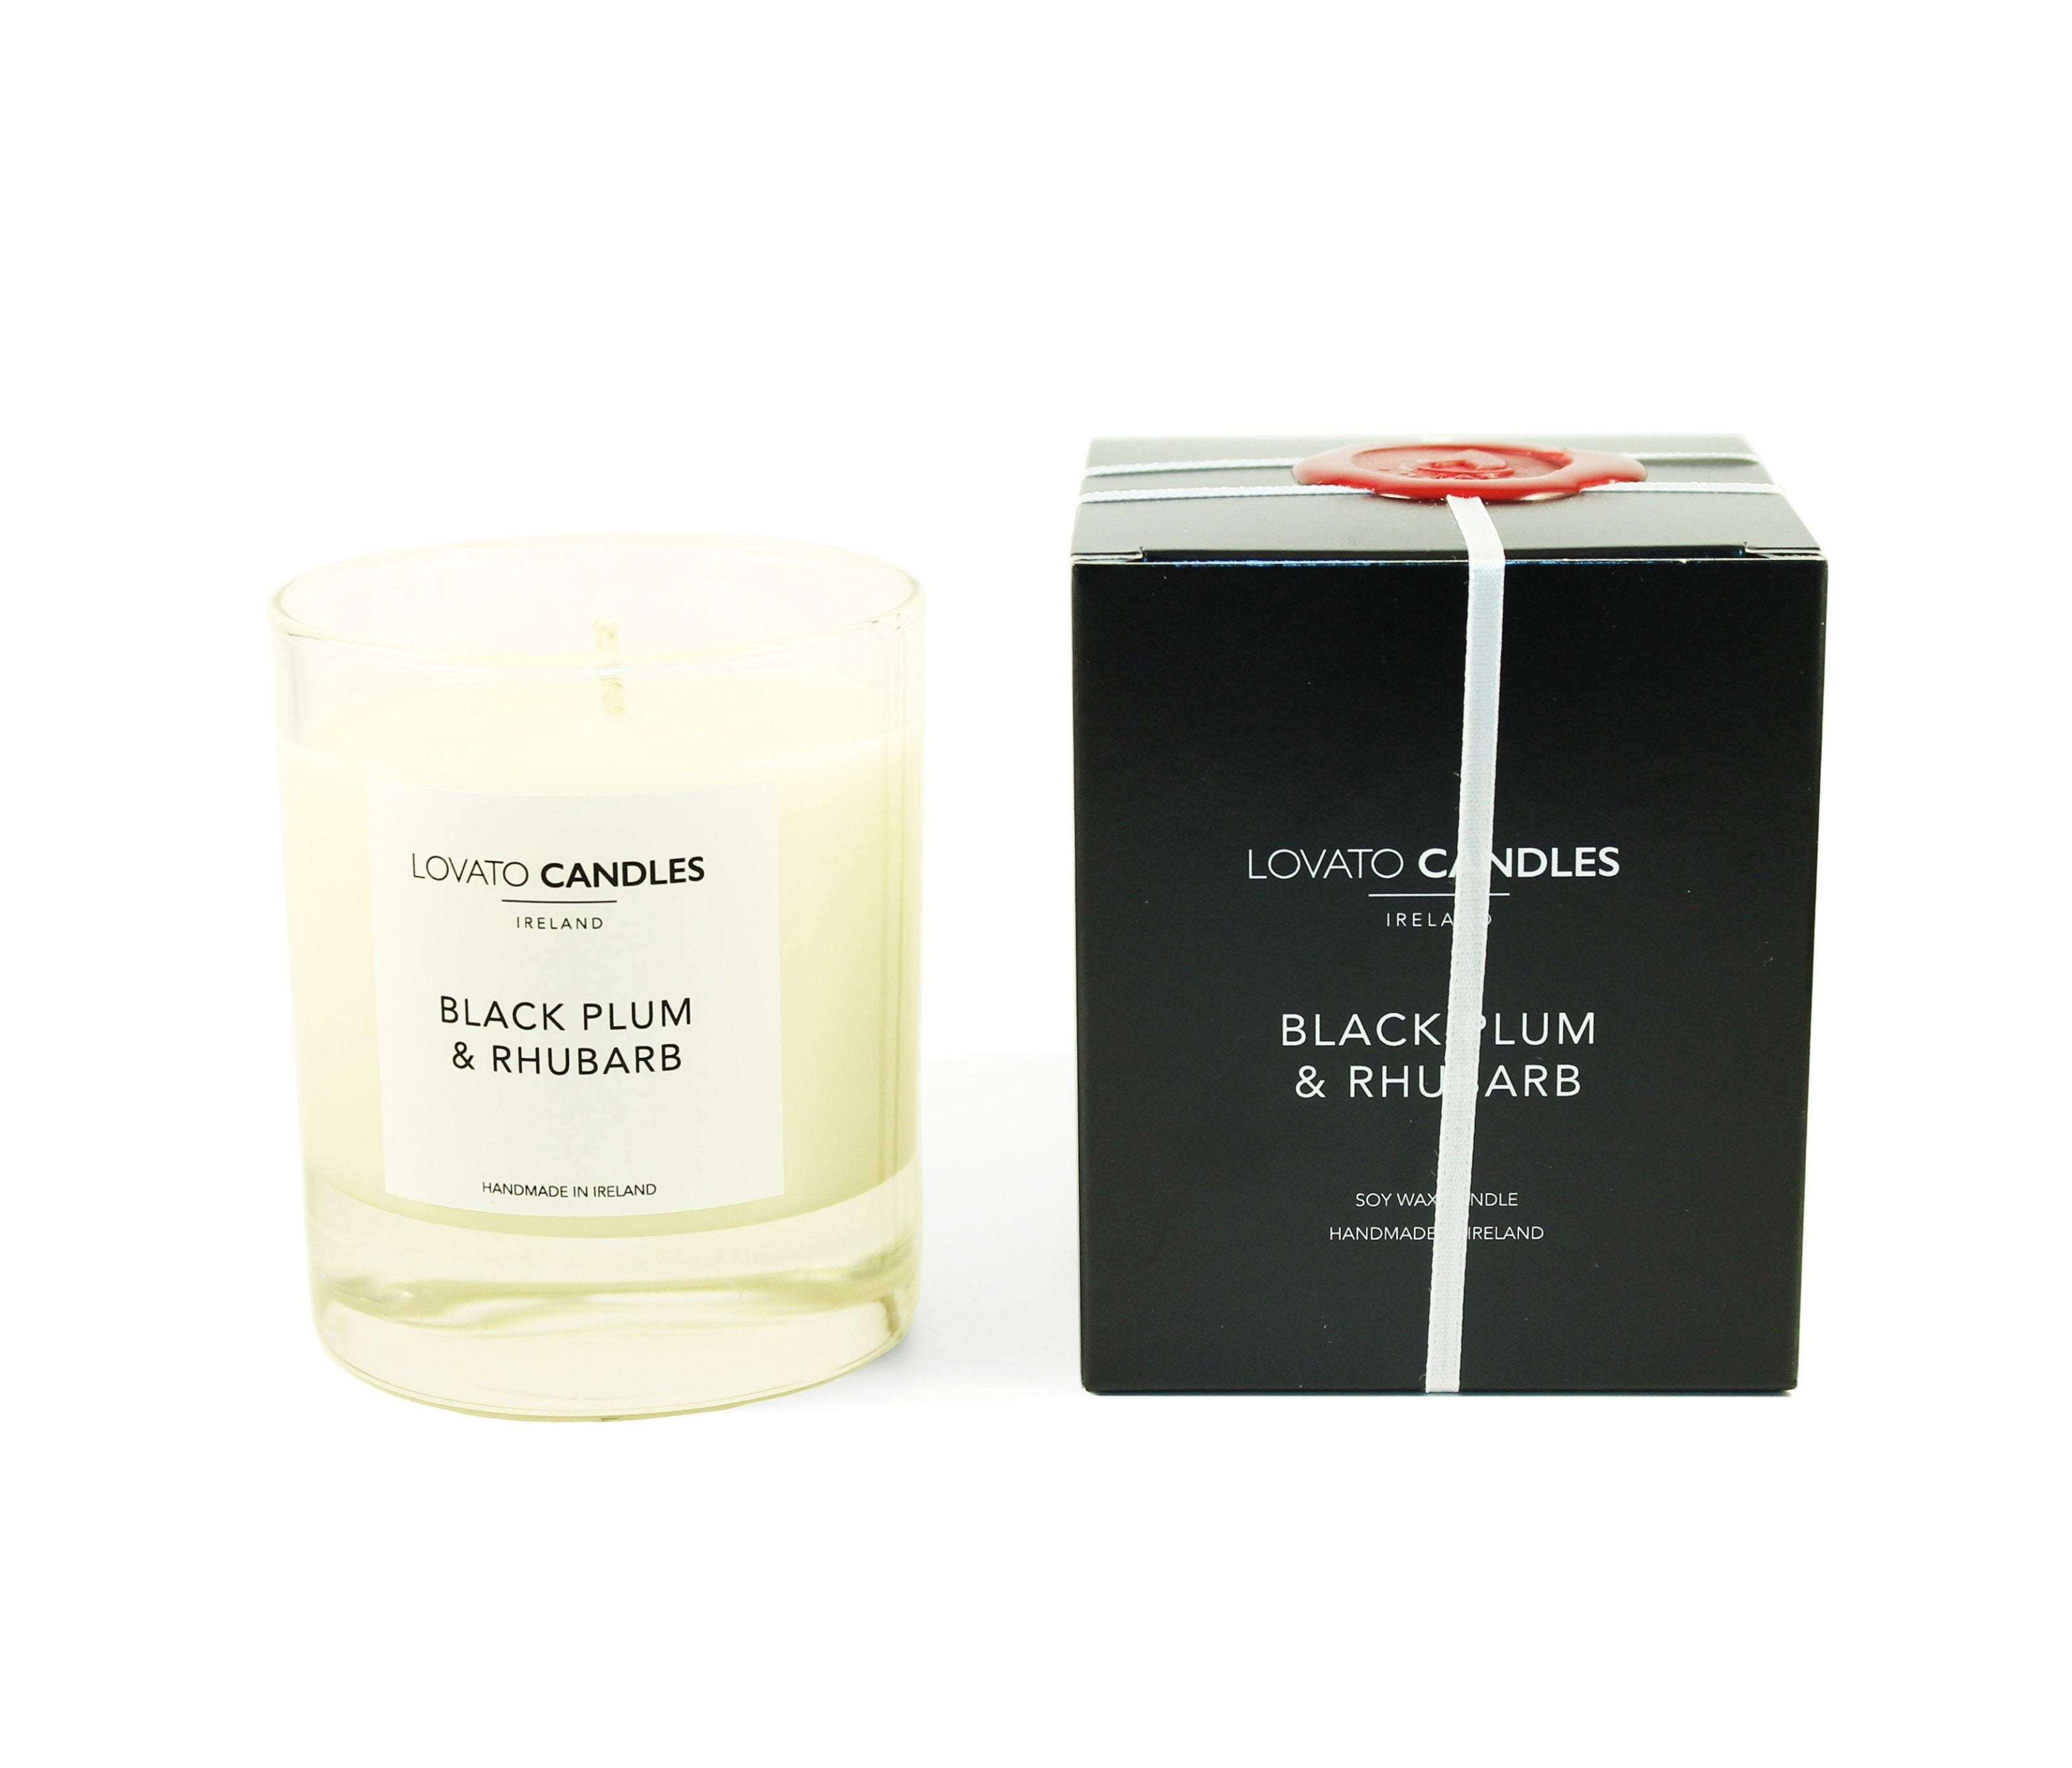 Clear Scented Candle with Luxury Black Box - Black Plum & Rhubarb - Lovato Candles